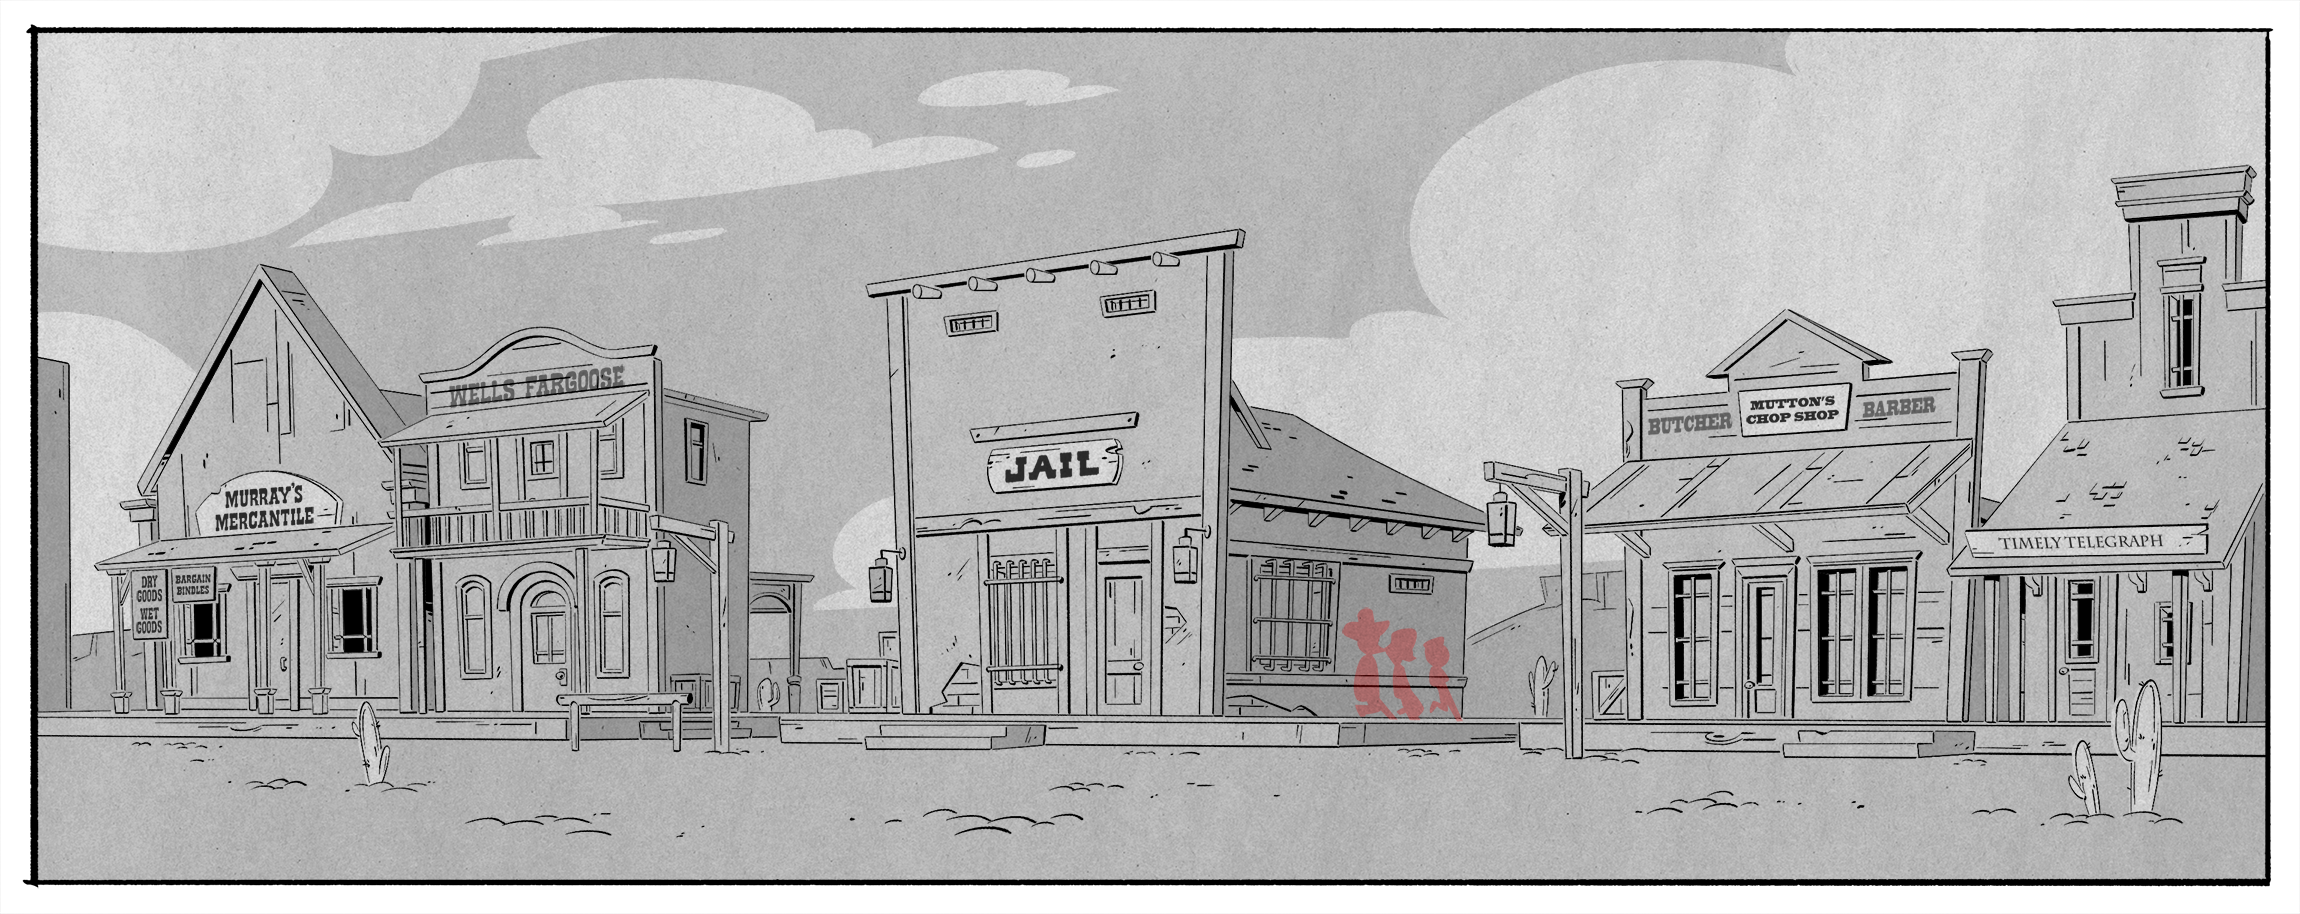 From Episode 9,  The Outlaw Scrooge McDuck!  Fun fact: I snuck my cat's name in one of the store signs. I had fantastic help from the writers on coming up with names for the other stores.